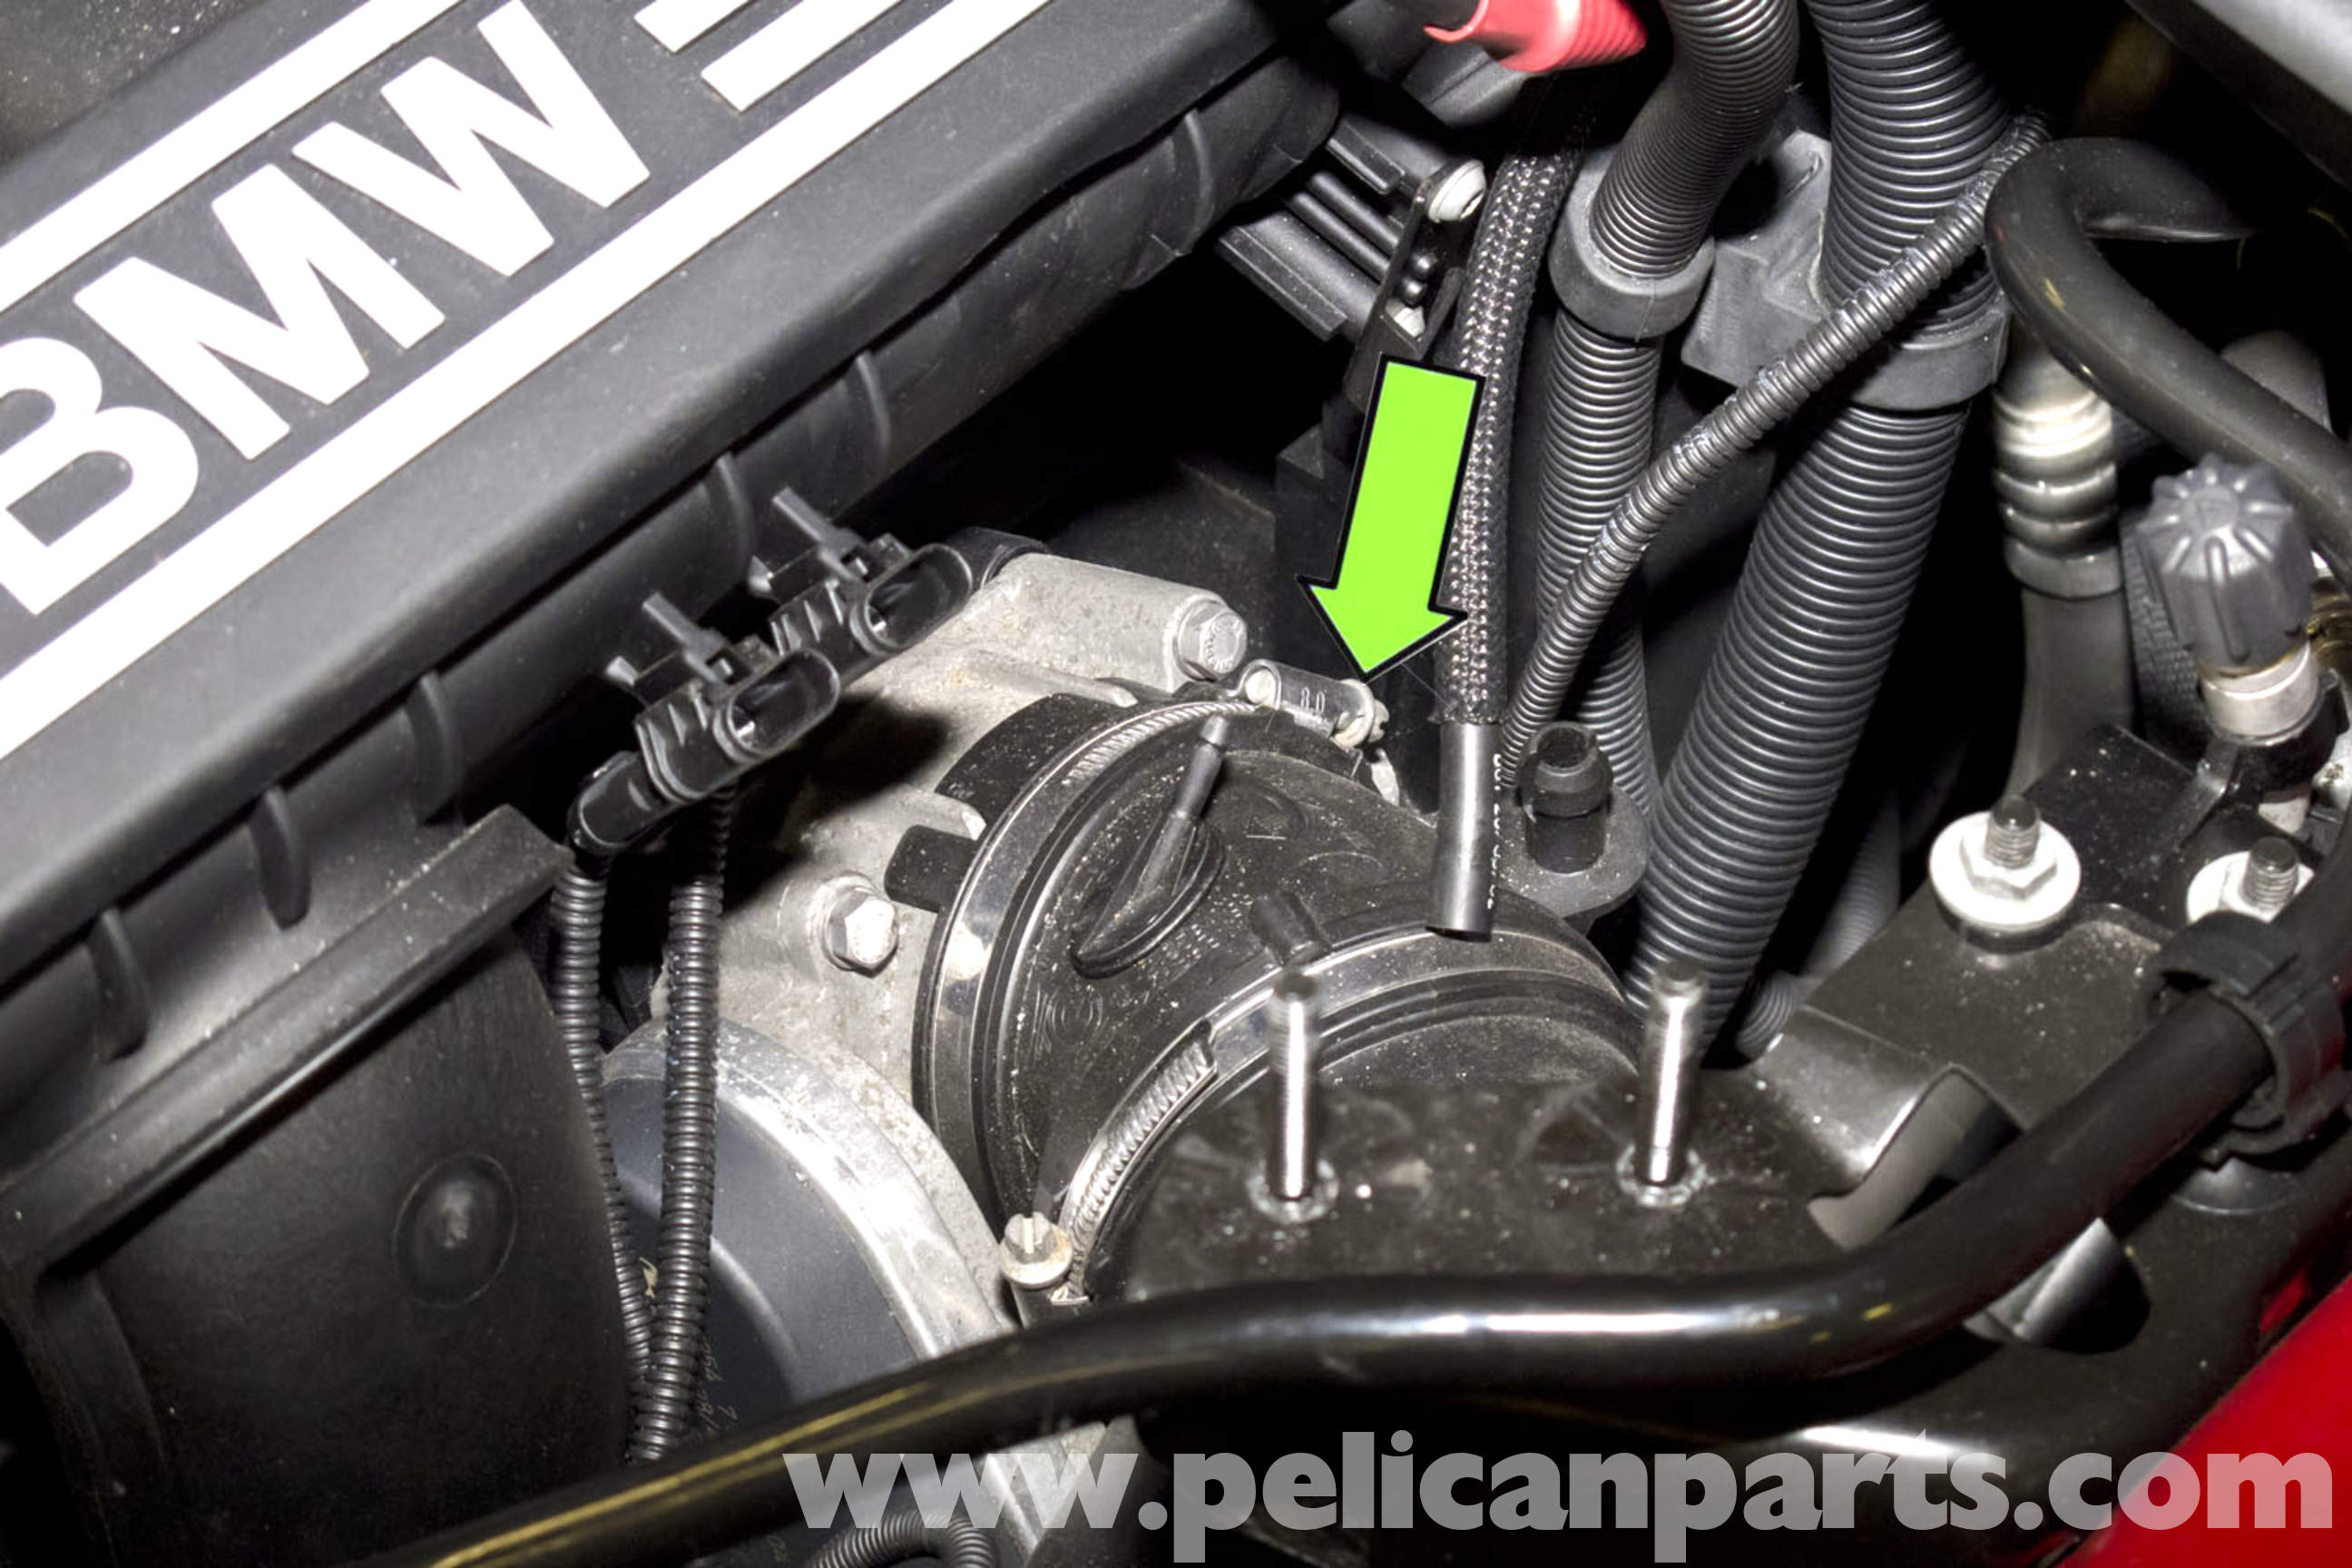 BMW E90 Throttle Body Replacement | E91, E92, E93 | Pelican Parts